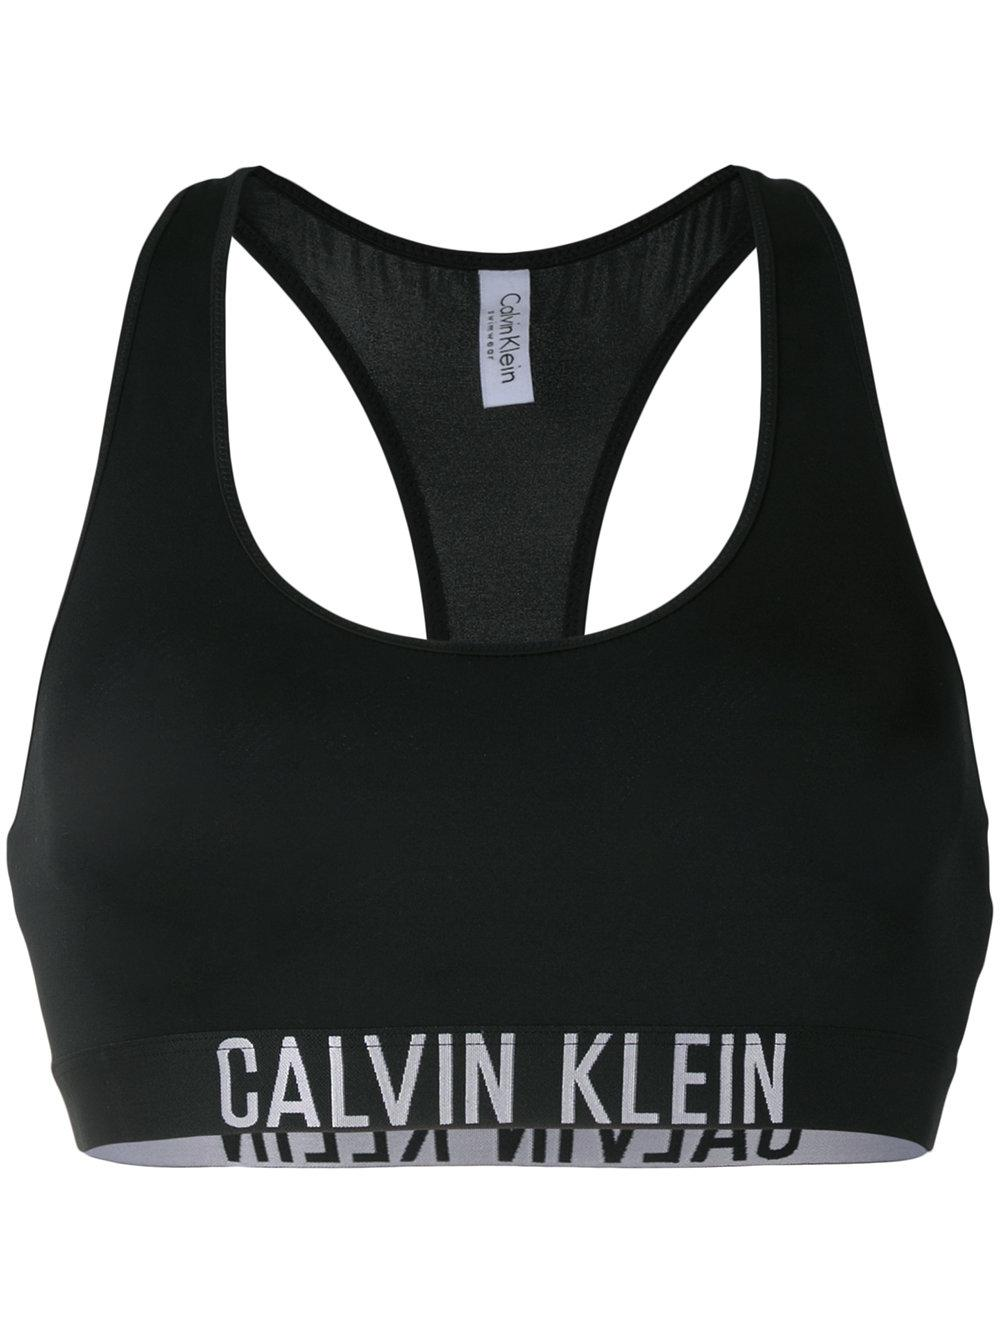 calvin klein racer crop bikini top in black lyst. Black Bedroom Furniture Sets. Home Design Ideas